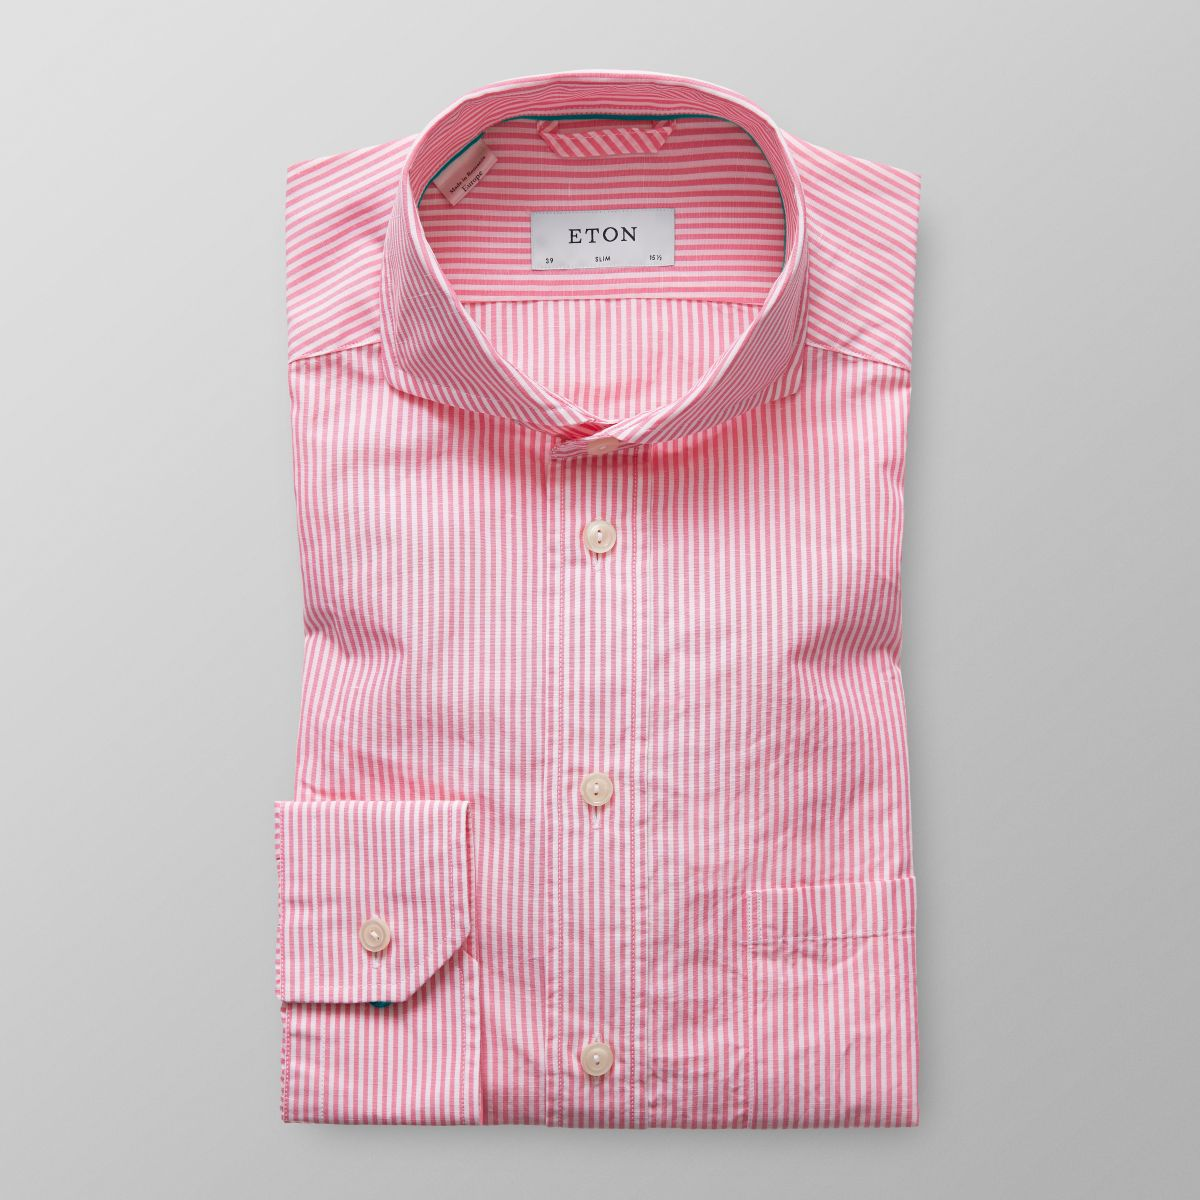 Pink Striped Shirt Kamos T Shirt